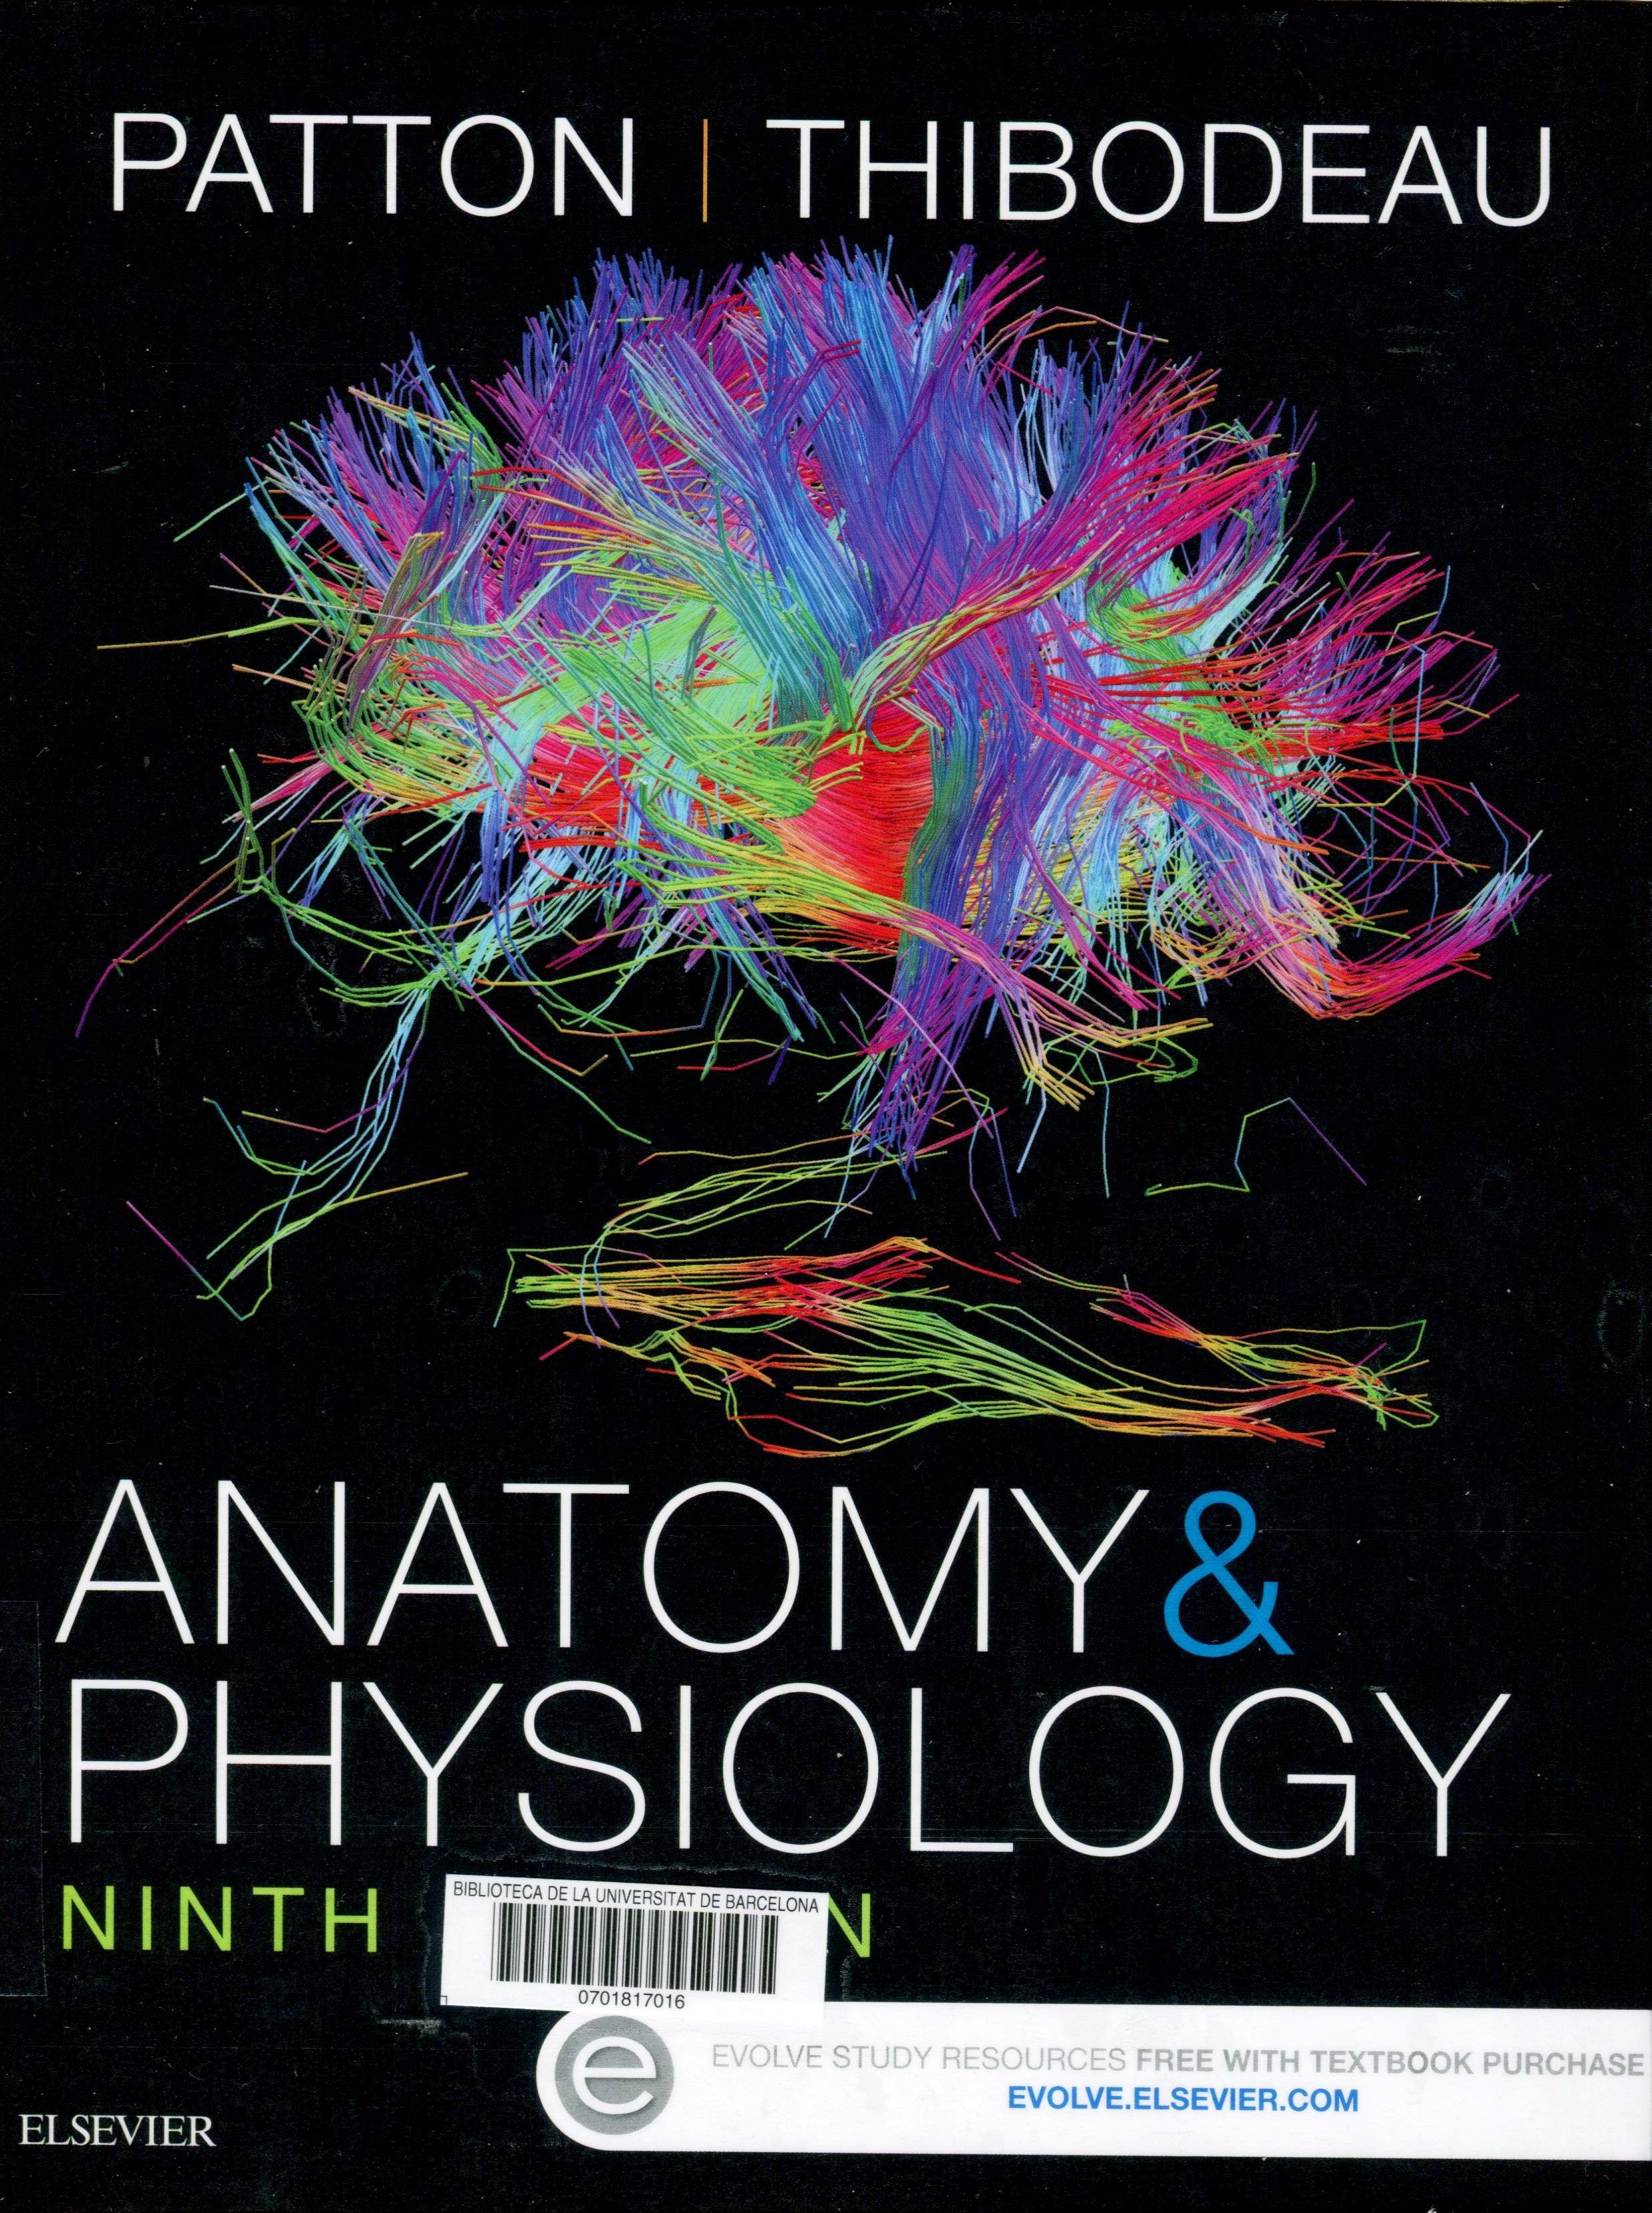 Anatomy & physiology / Kevin T. Patton, Gary A. Thibodeau. 9th. ed ...